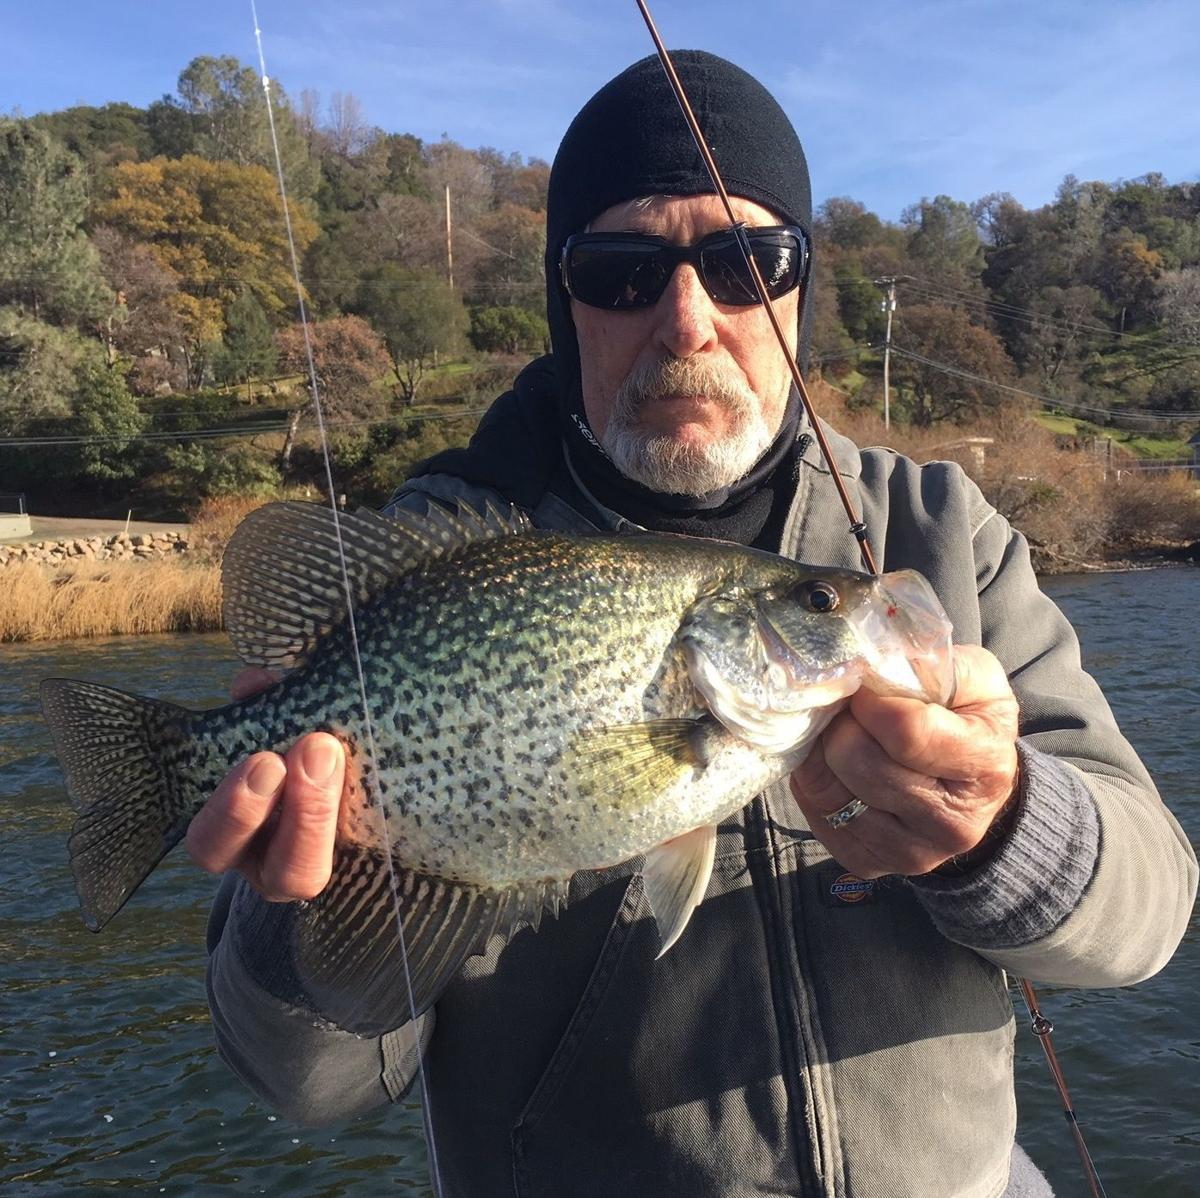 Napa Valley Fishing Report: More crappie and bluegill than